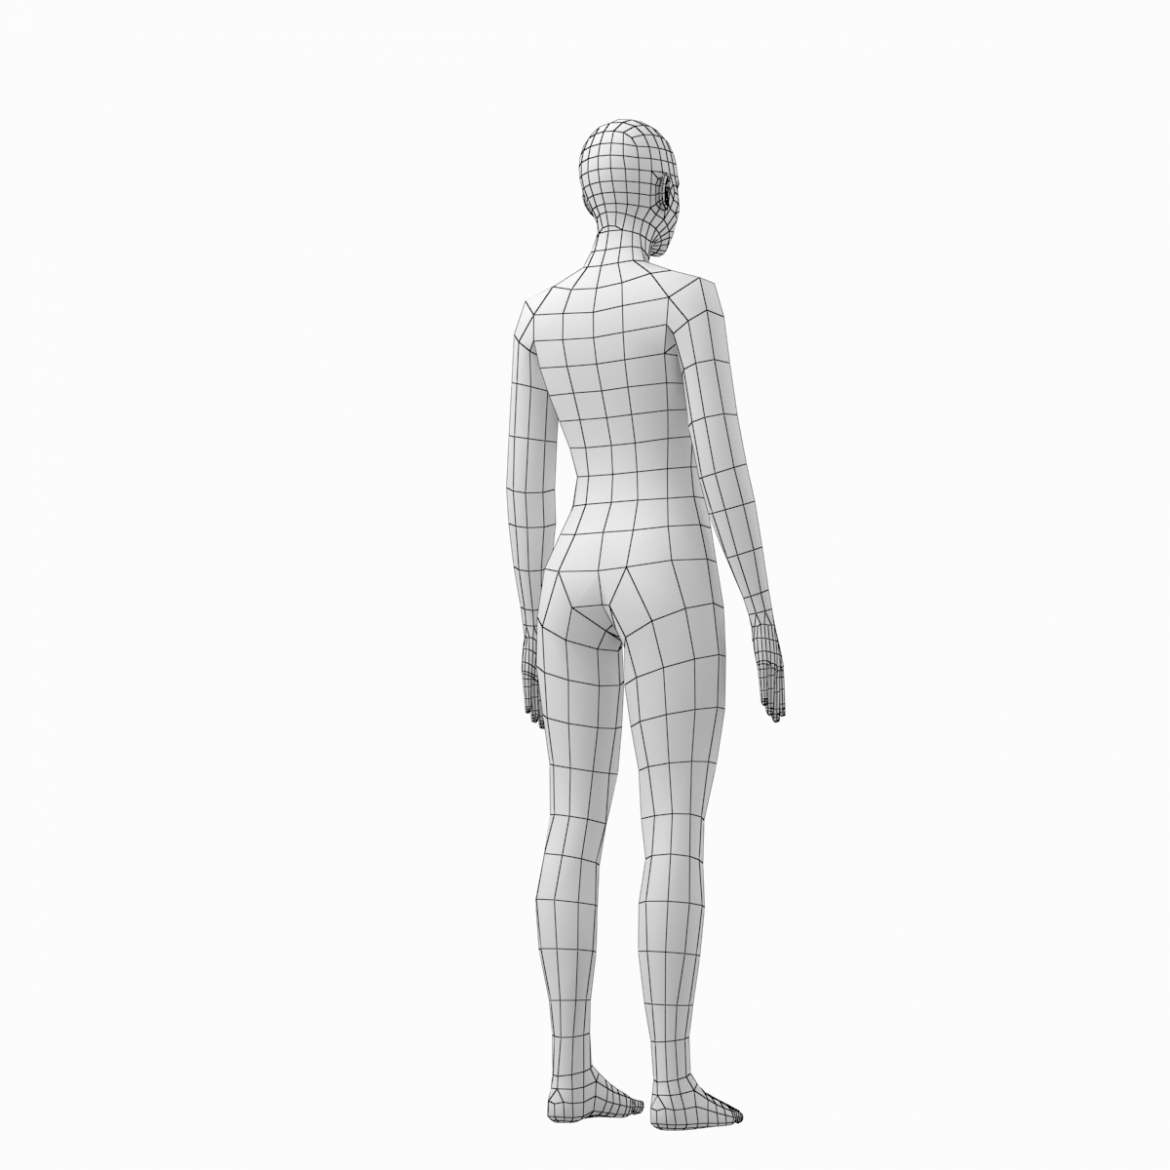 female and male deailed base mesh in rest pose 3d model 3ds max dxf dwg fbx c4d dae ma mb  obj 301300